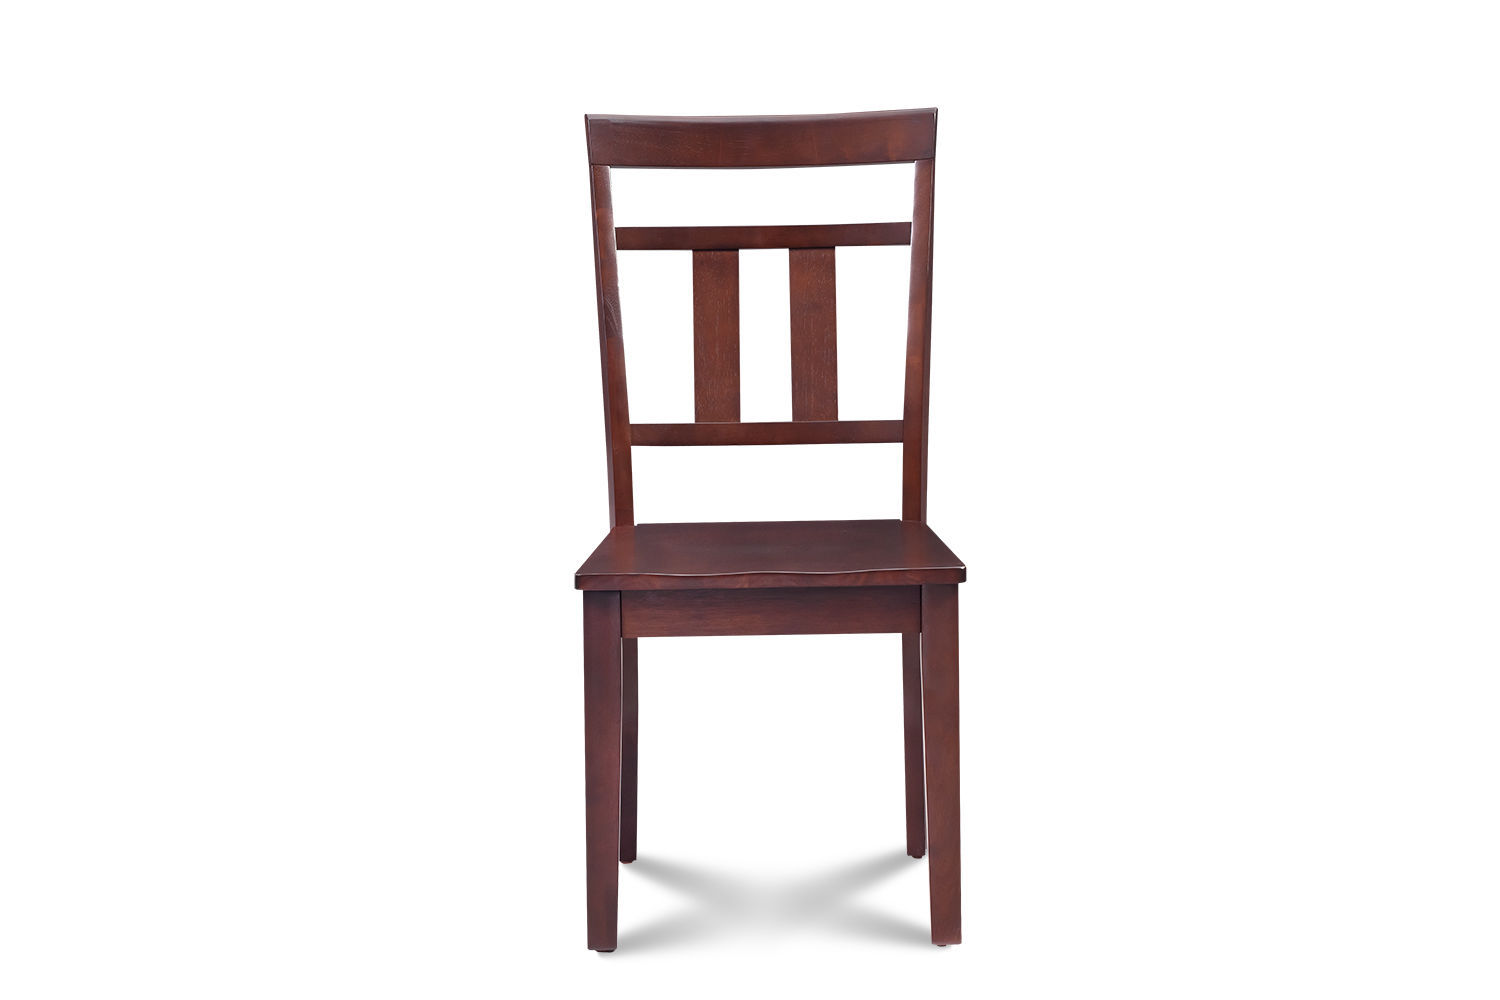 4 KITCHEN DINING SIDE CHAIRS w/ WOODEN SEAT IN MAHOGANY FINISH